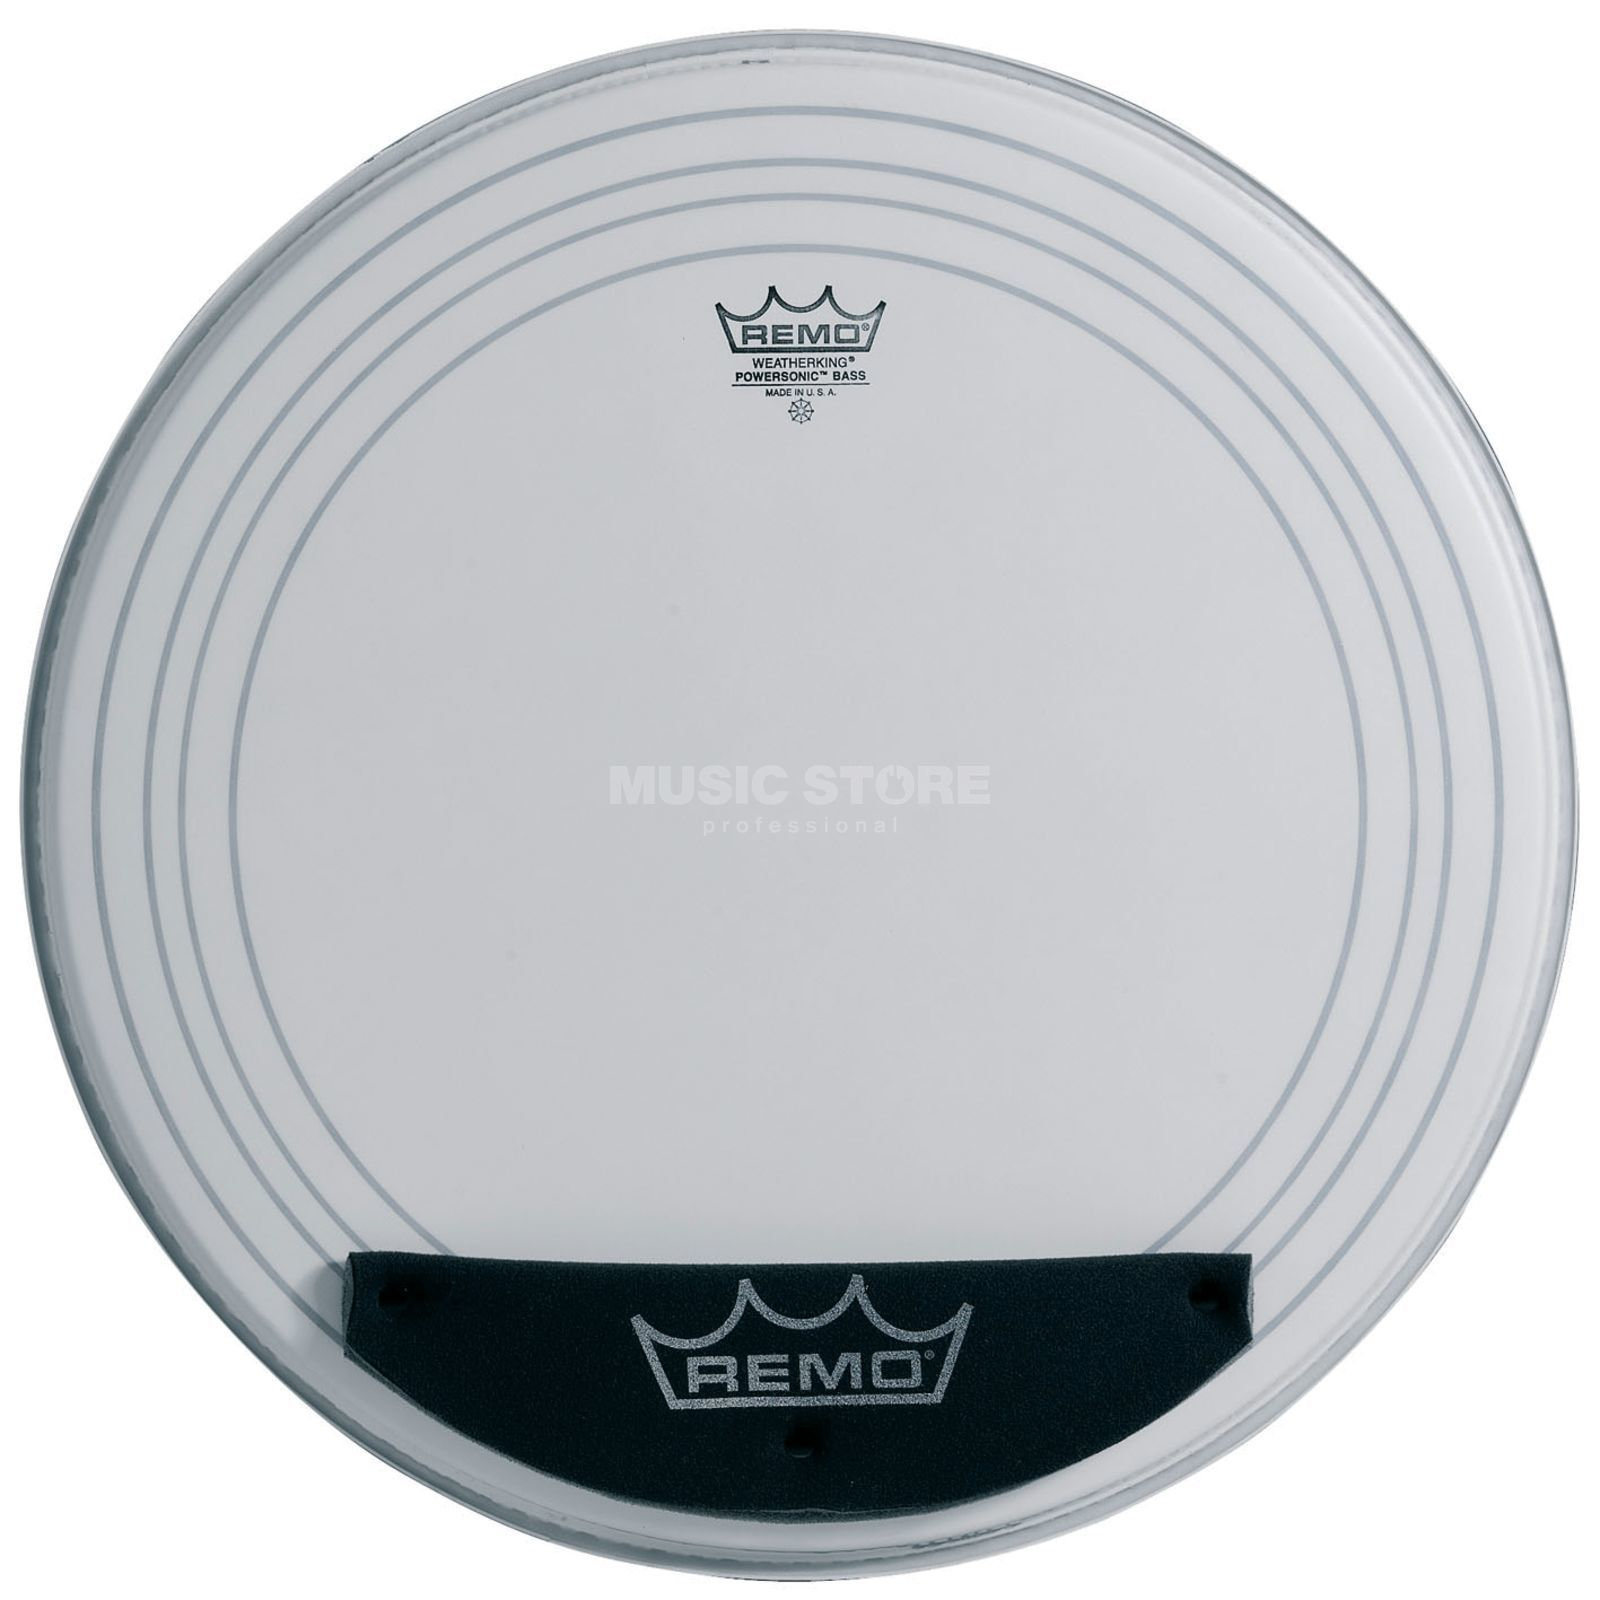 "Remo Powersonic 20"", coated, BassDrum Batter Imagen del producto"